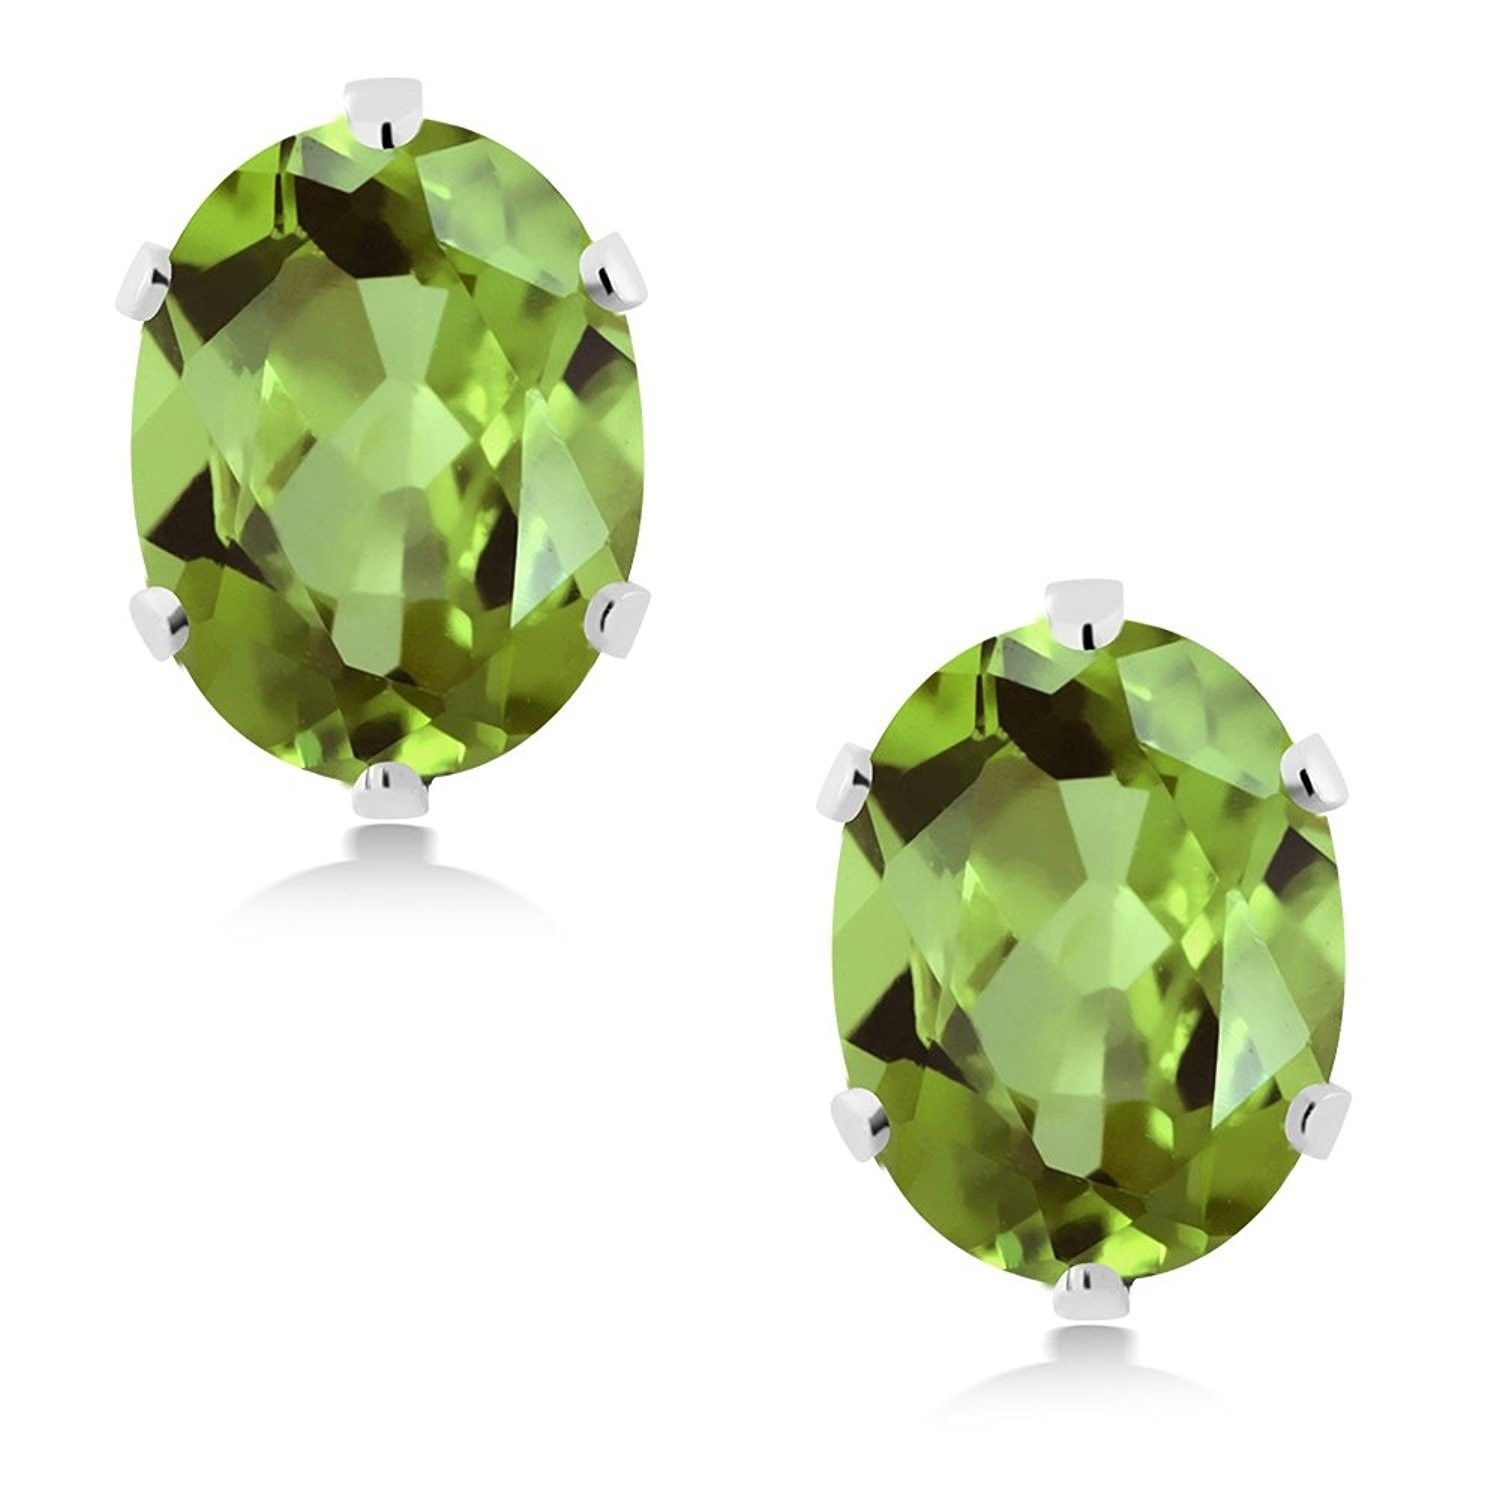 Gem Stone King 2.60 Ct Oval 8x6mm White Topaz 18K Yellow Gold Plated Silver Stud Earrings